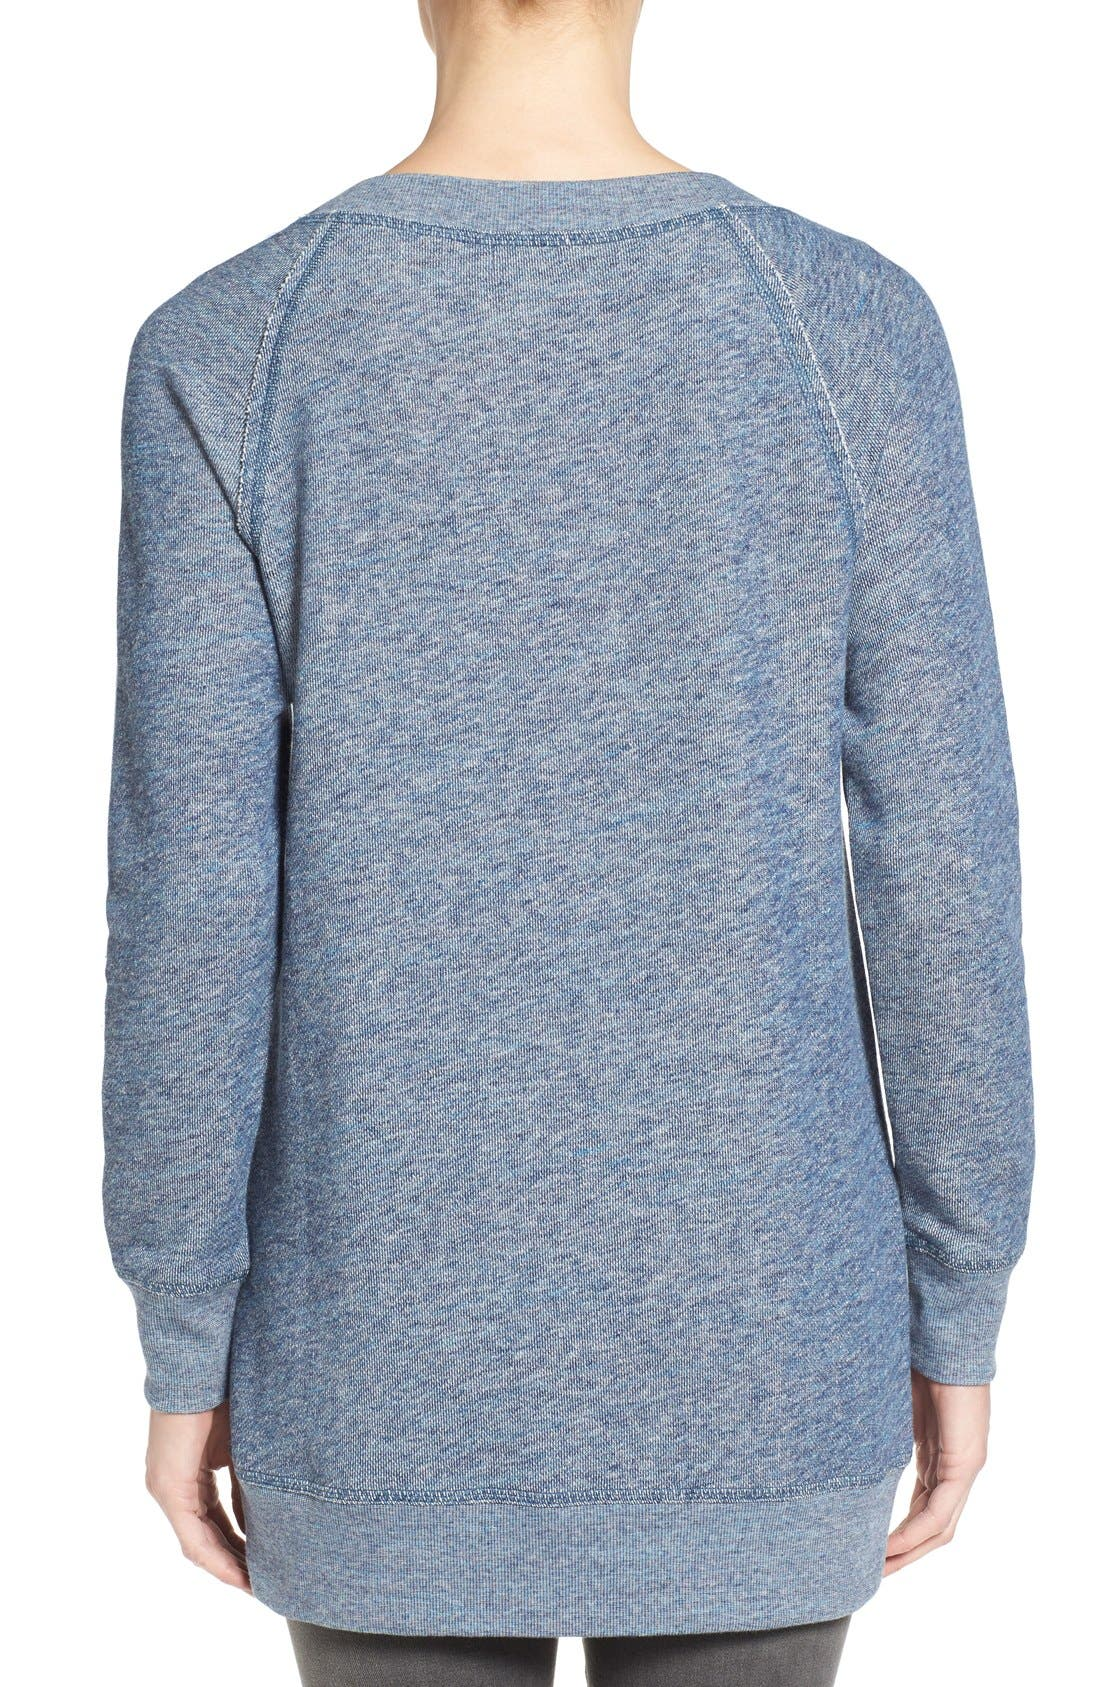 Alternate Image 2  - Caslon® Space Dye Tunic Sweatshirt (Regular & Petite)